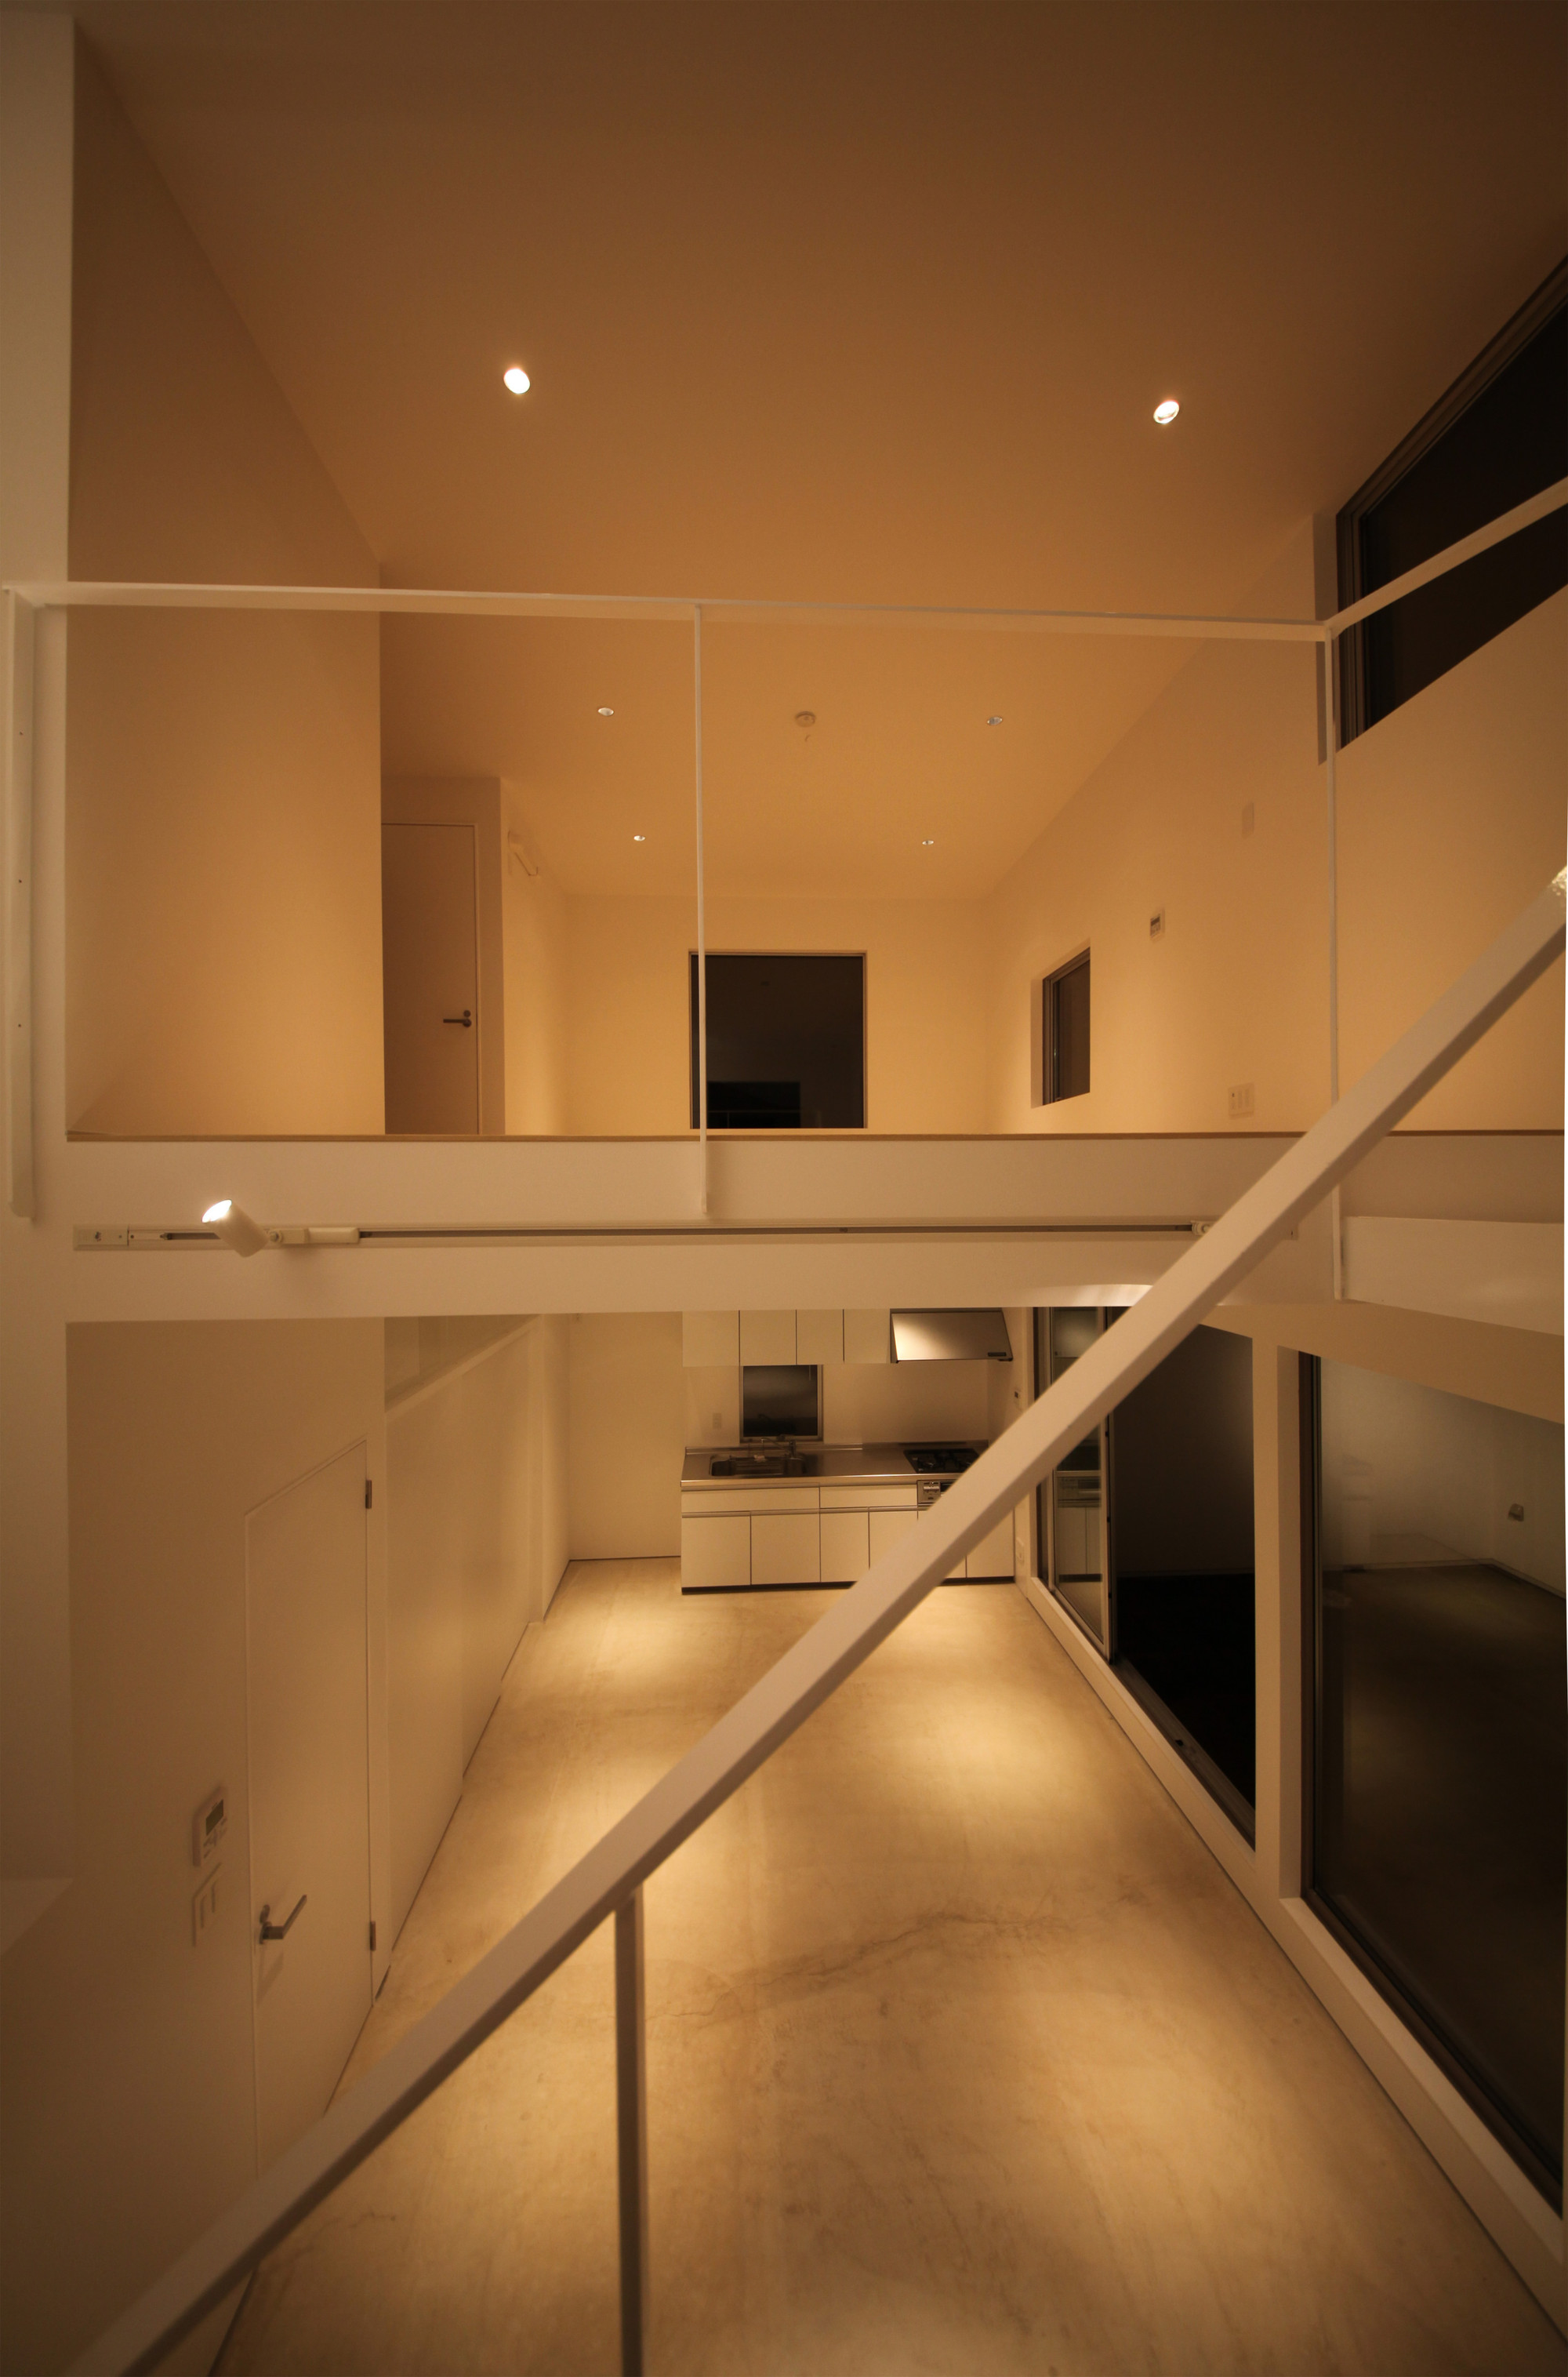 Gallery of Minerals and Atelier / THREE.BALL.CASCADE. Architecture Design Office